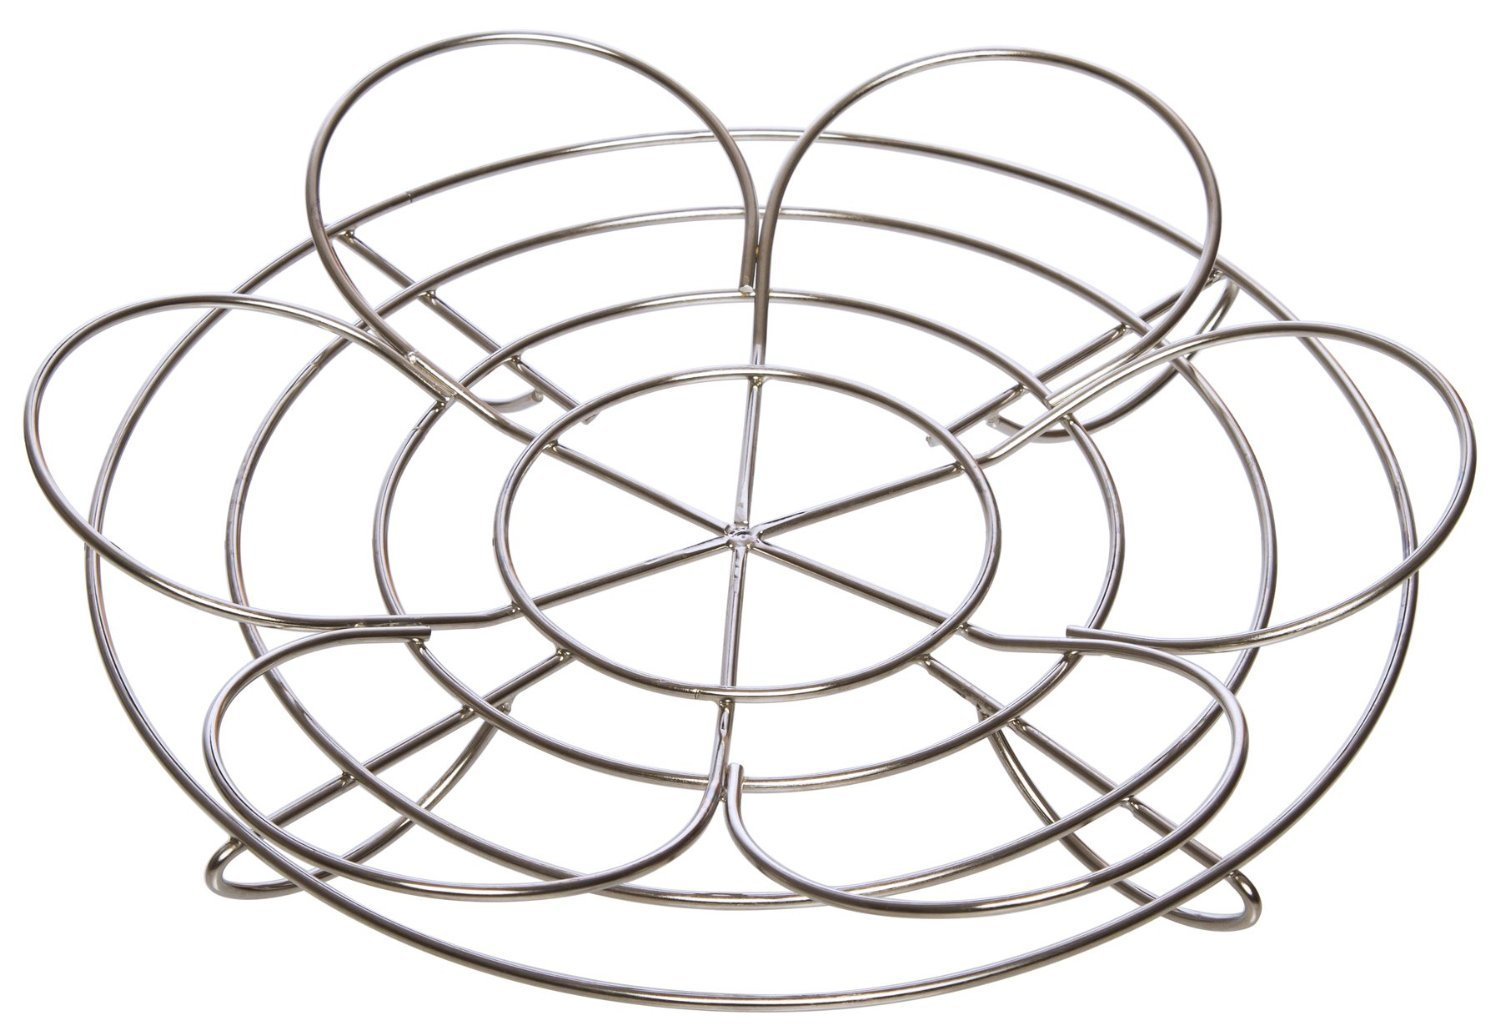 2 X Prepworks from Progressive International CKC-400 Reversible Stainless Steel Canning Rack by Progressive